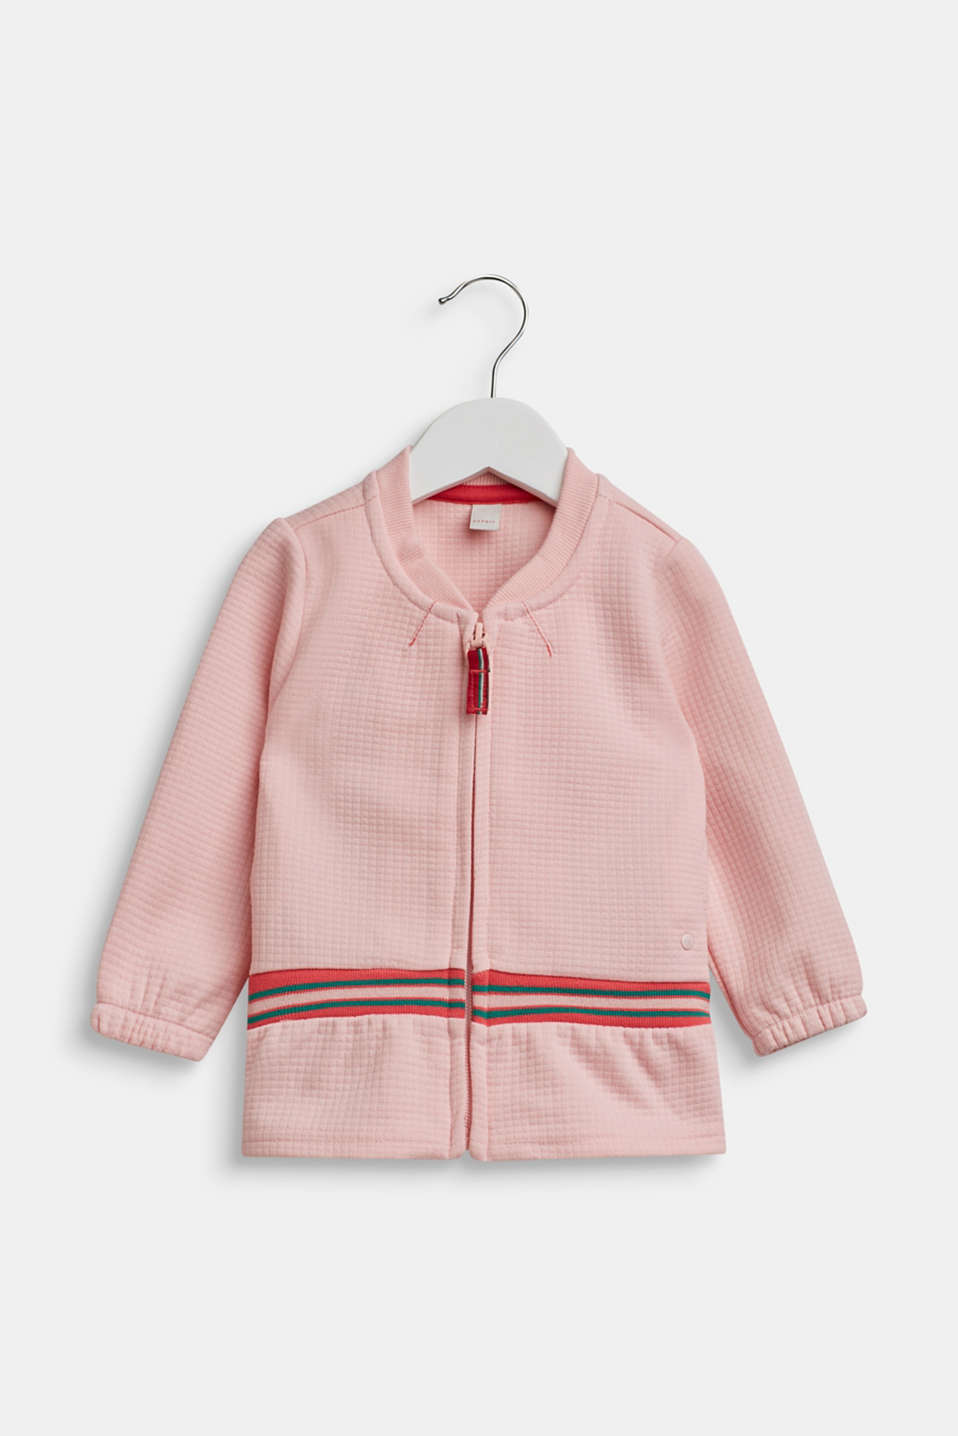 Sweatshirt cardigan with contrasting stripes, LCTINTED ROSE, detail image number 0